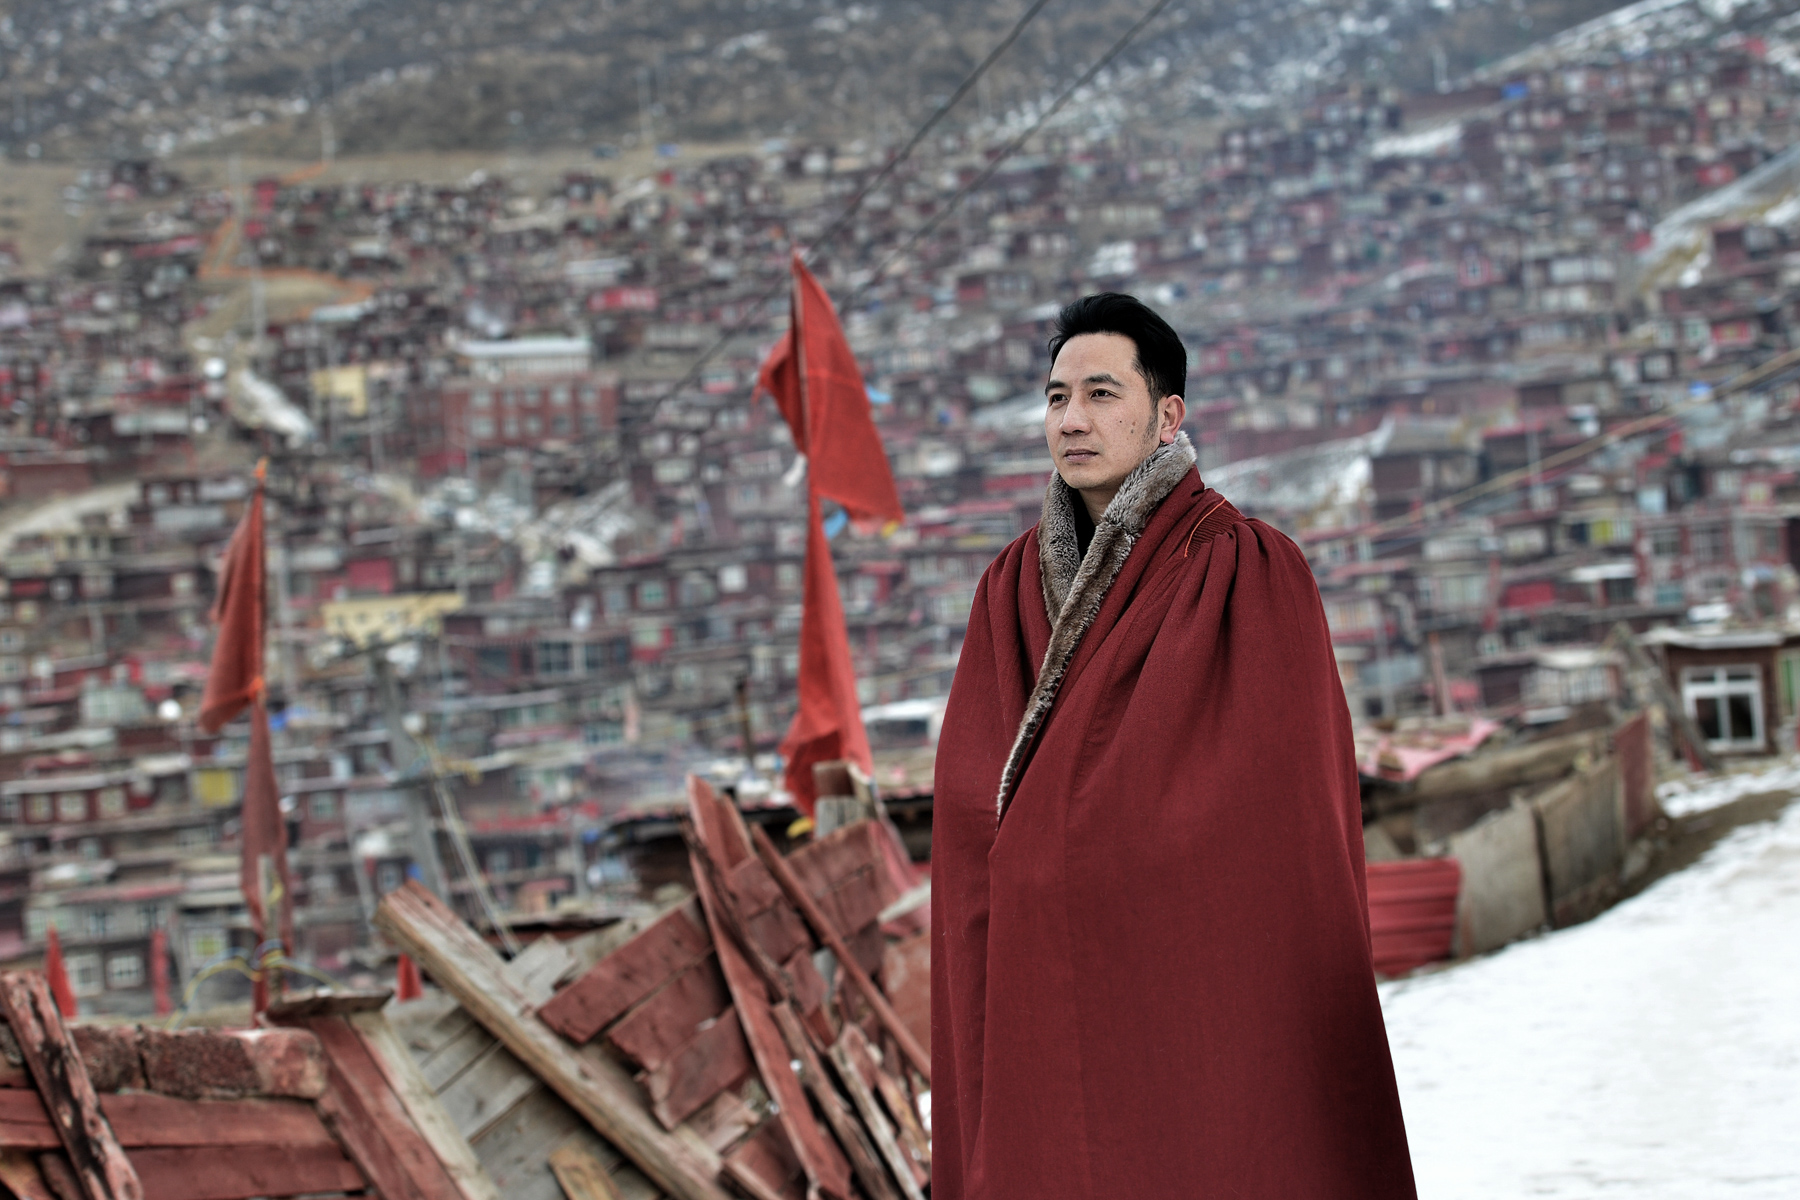 Lin Shengbin, whose wife and children died in an arson attack, takes a walk at the Larung Gar Buddhist Academy, in Sertar county, Tibet Autonomous Region, January 6. In June 2017, Lin's nanny, Mo Huanjing, deep in gambling debt, made a plan to set fire to her employer's home and then extinguish it, hoping the family would reward her financially. The fire killed Lin's three children and wife. Mo was sentenced to death and Lin, tormented by his loss, converted to Buddhism. (Li Qizheng/Sina)